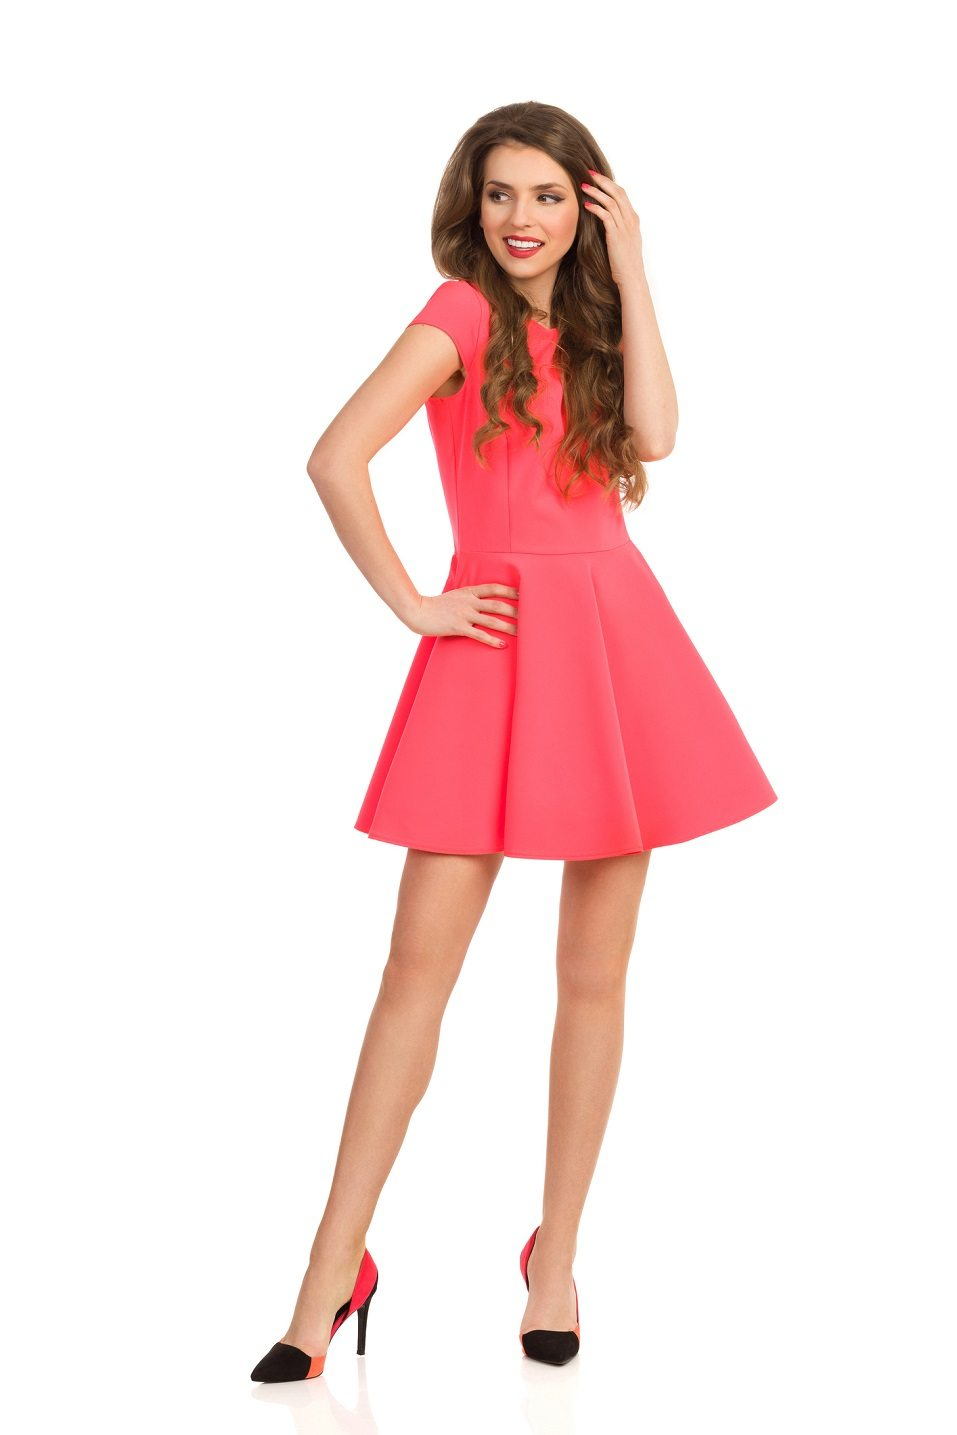 young woman in pink mini dress and high heels